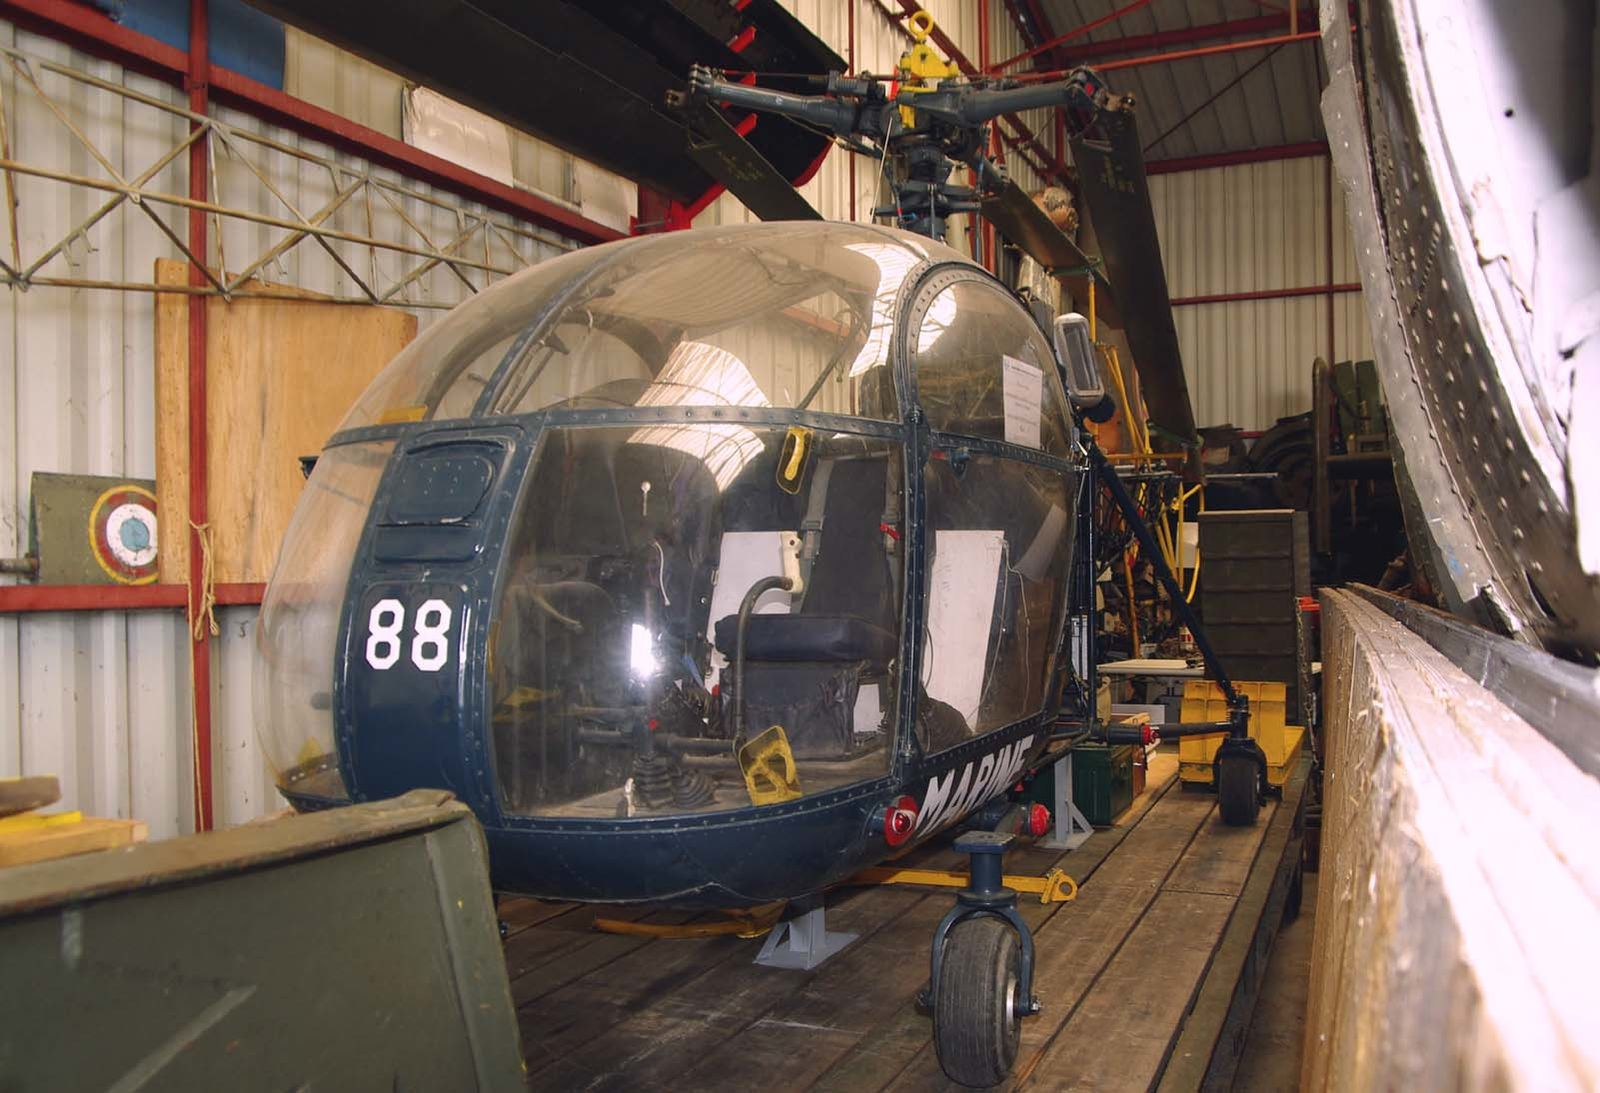 L'Aérospatiale SE-3130 Alouette II N°1488, version de la Marine Nationale.